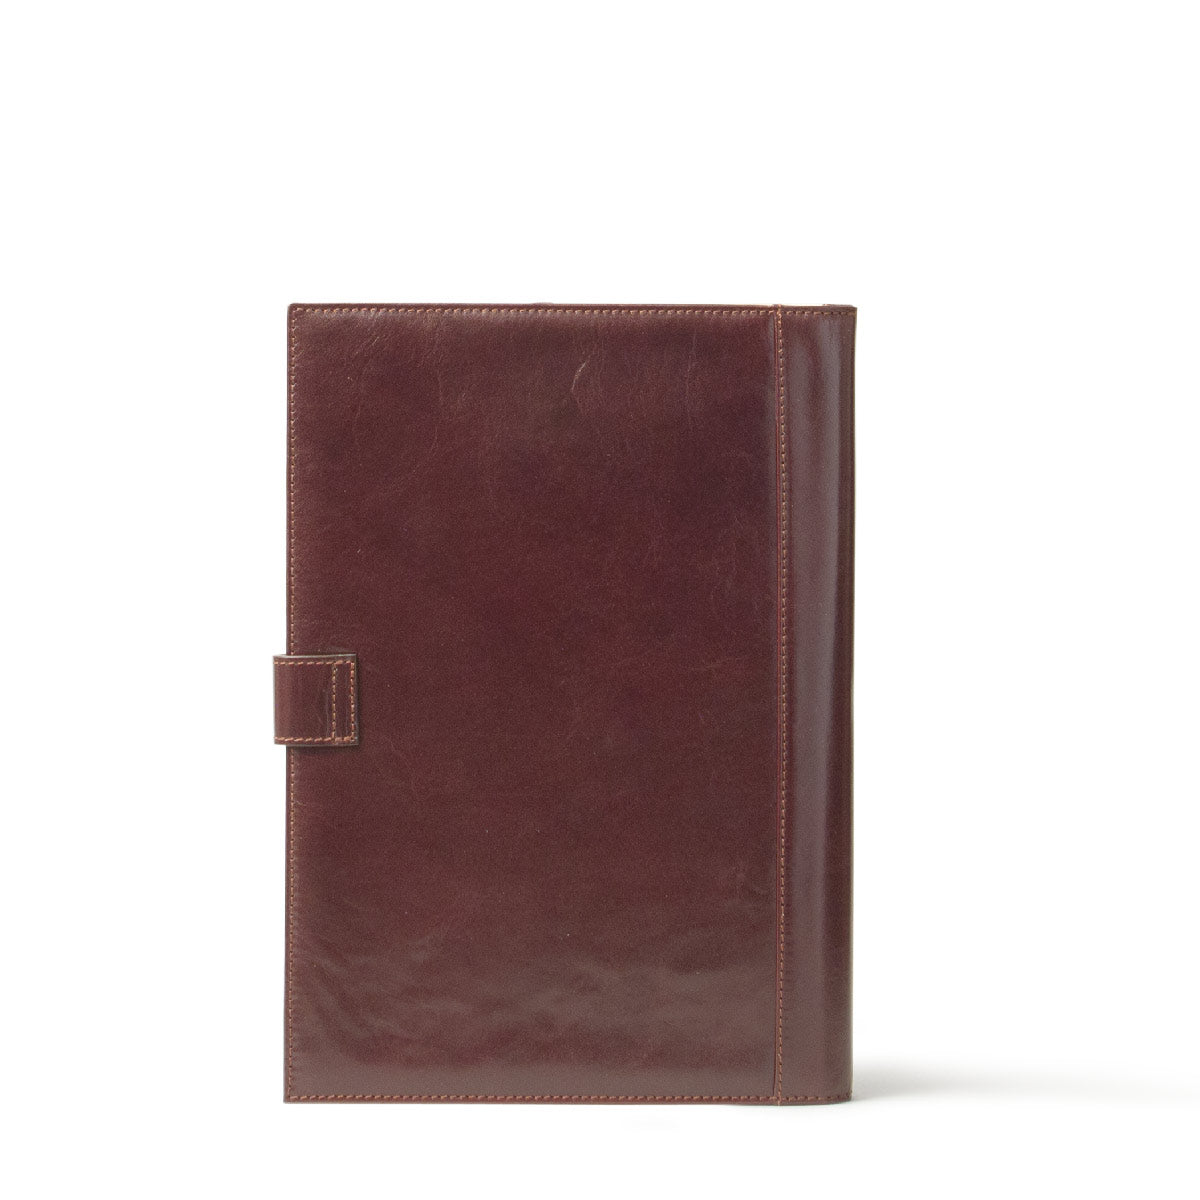 Image 4 of the 'Gallo' Dark Chocolate Veg-Tanned Leather Prestige Business Folder